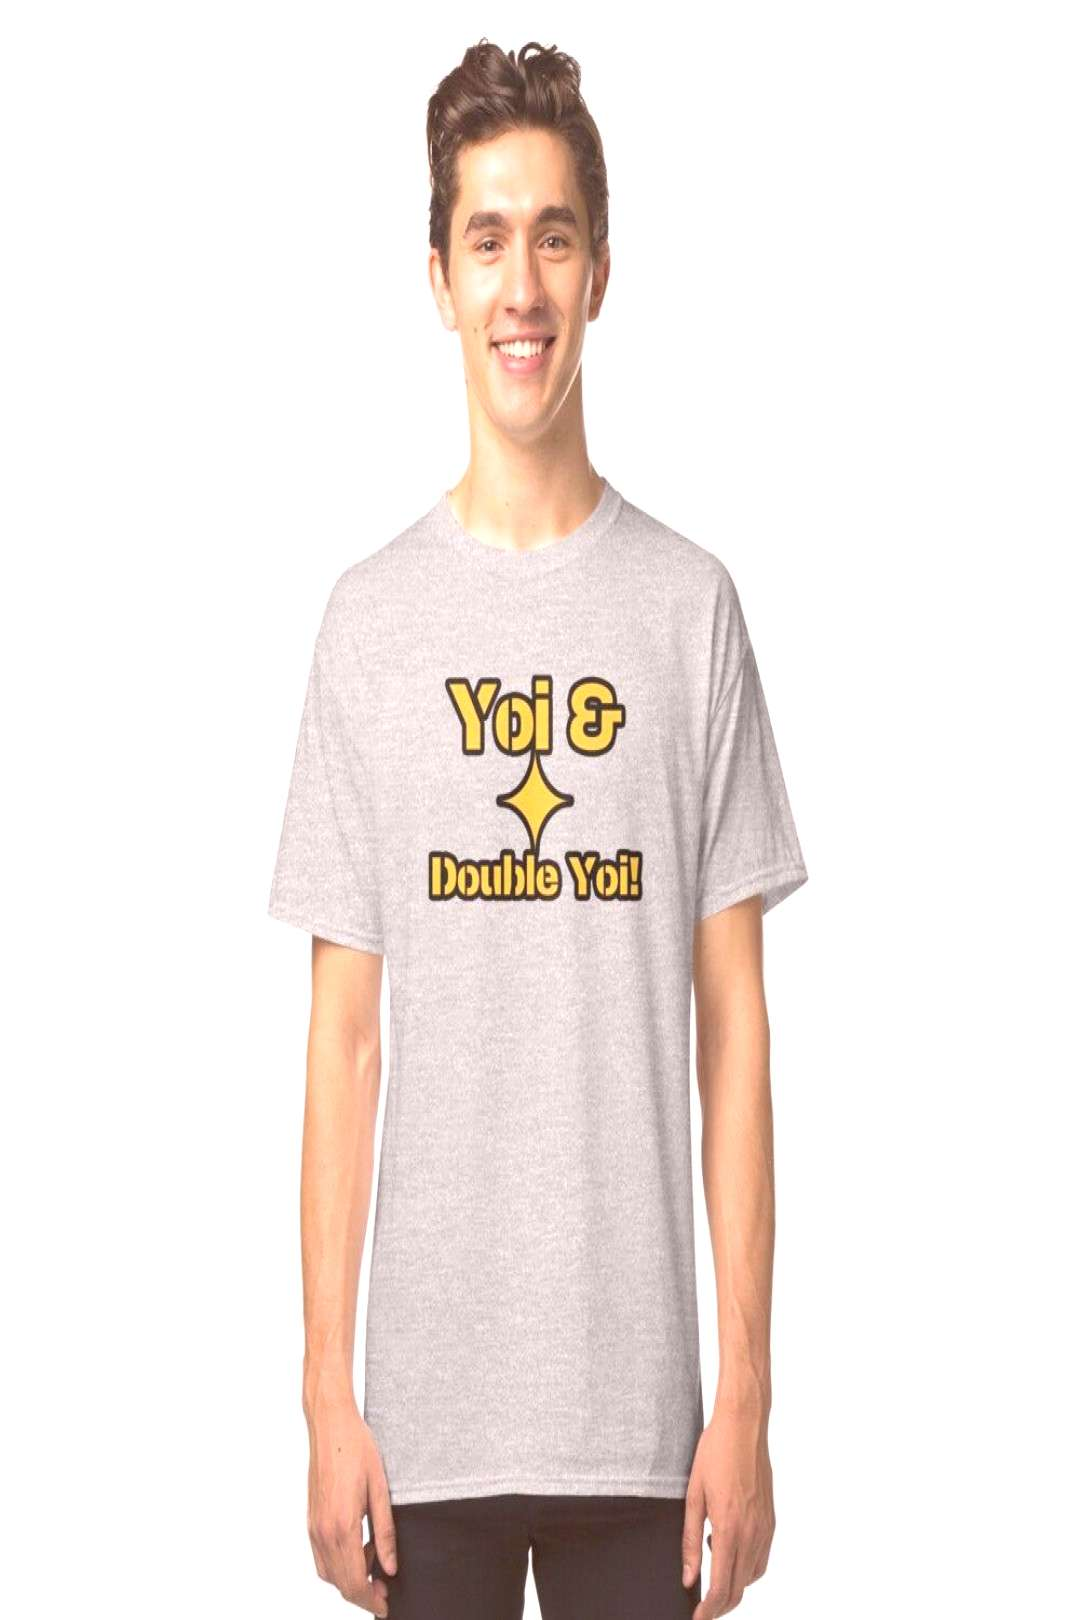 Pittsburgh Yoi and Double Yoi Steelers History Shirt Sticker Classic T-Shirt by Aaron Geraud - G